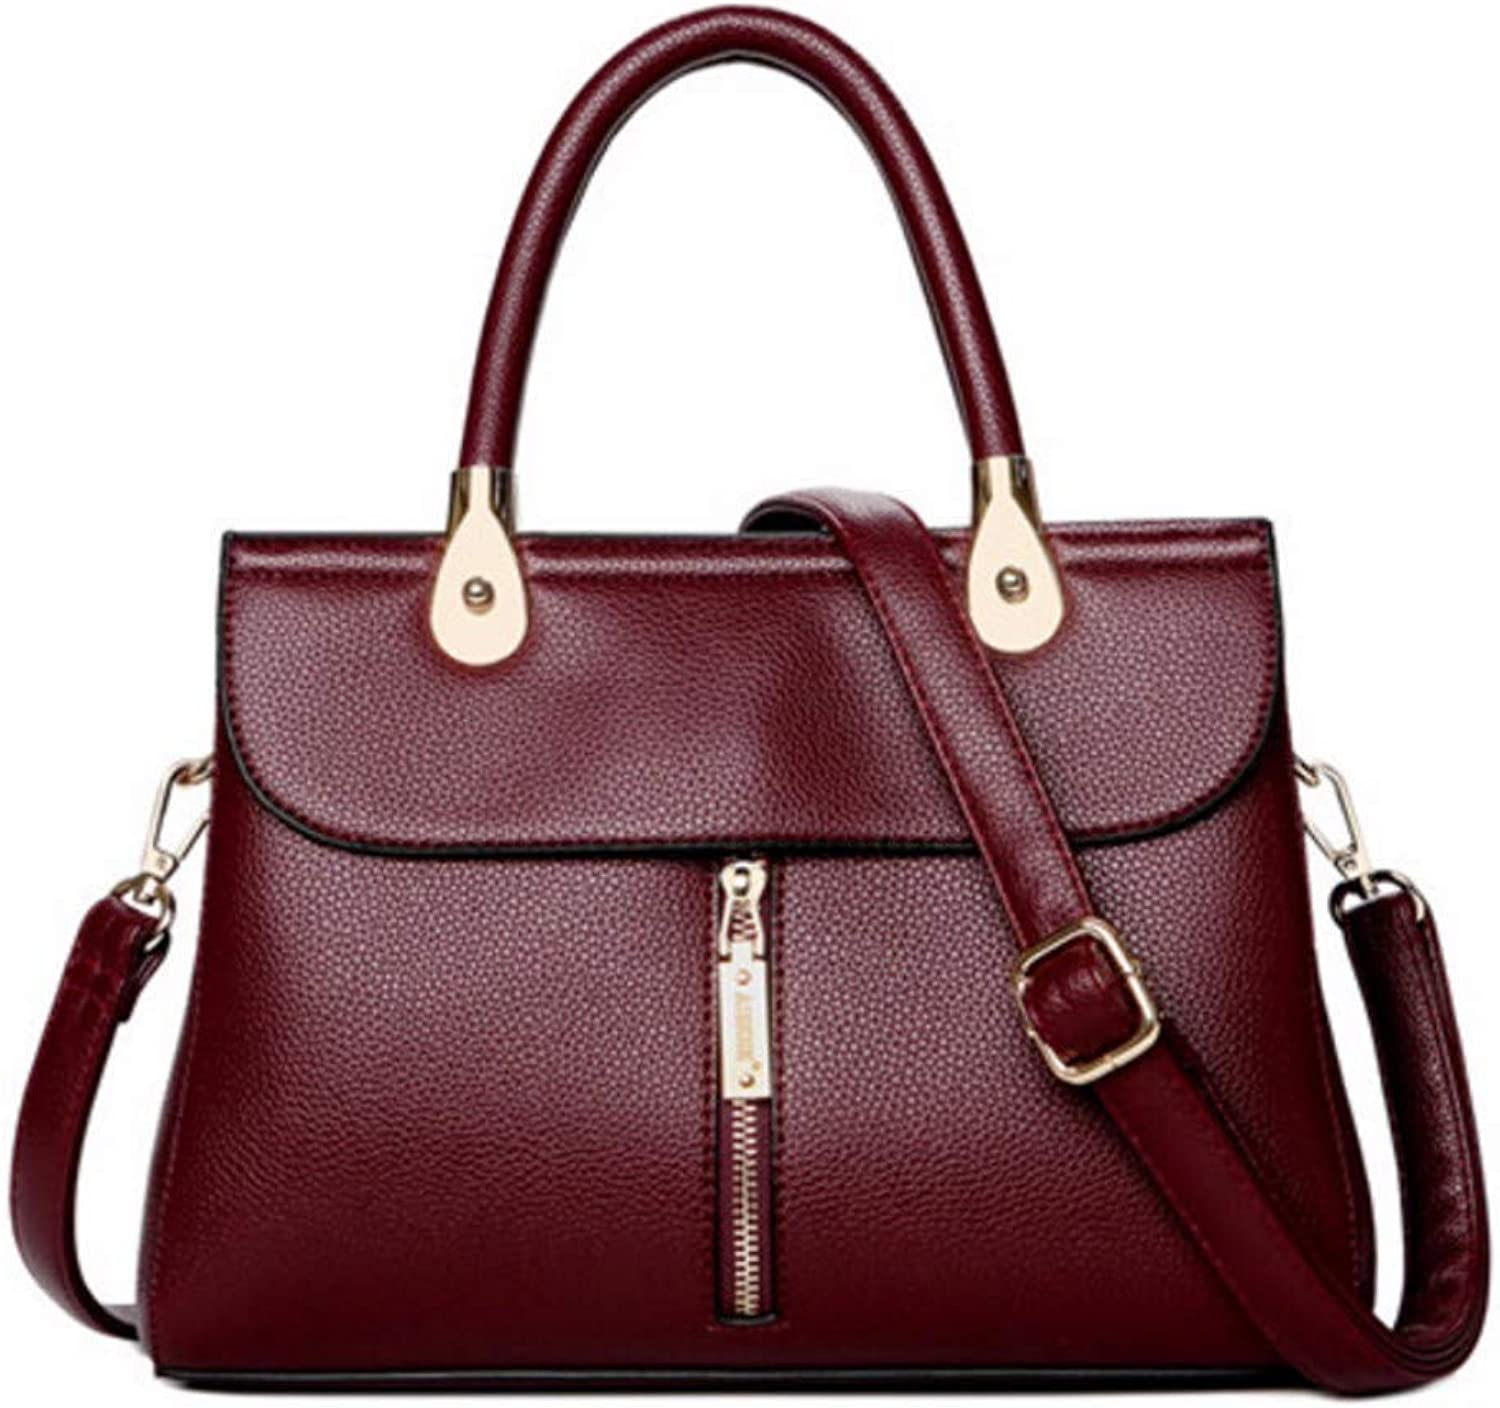 JQSM Mother Gift Hight Quality Classic Leather Bag for Women 2019 Mid Zipper Leather Handbags Ladies Hand Bags